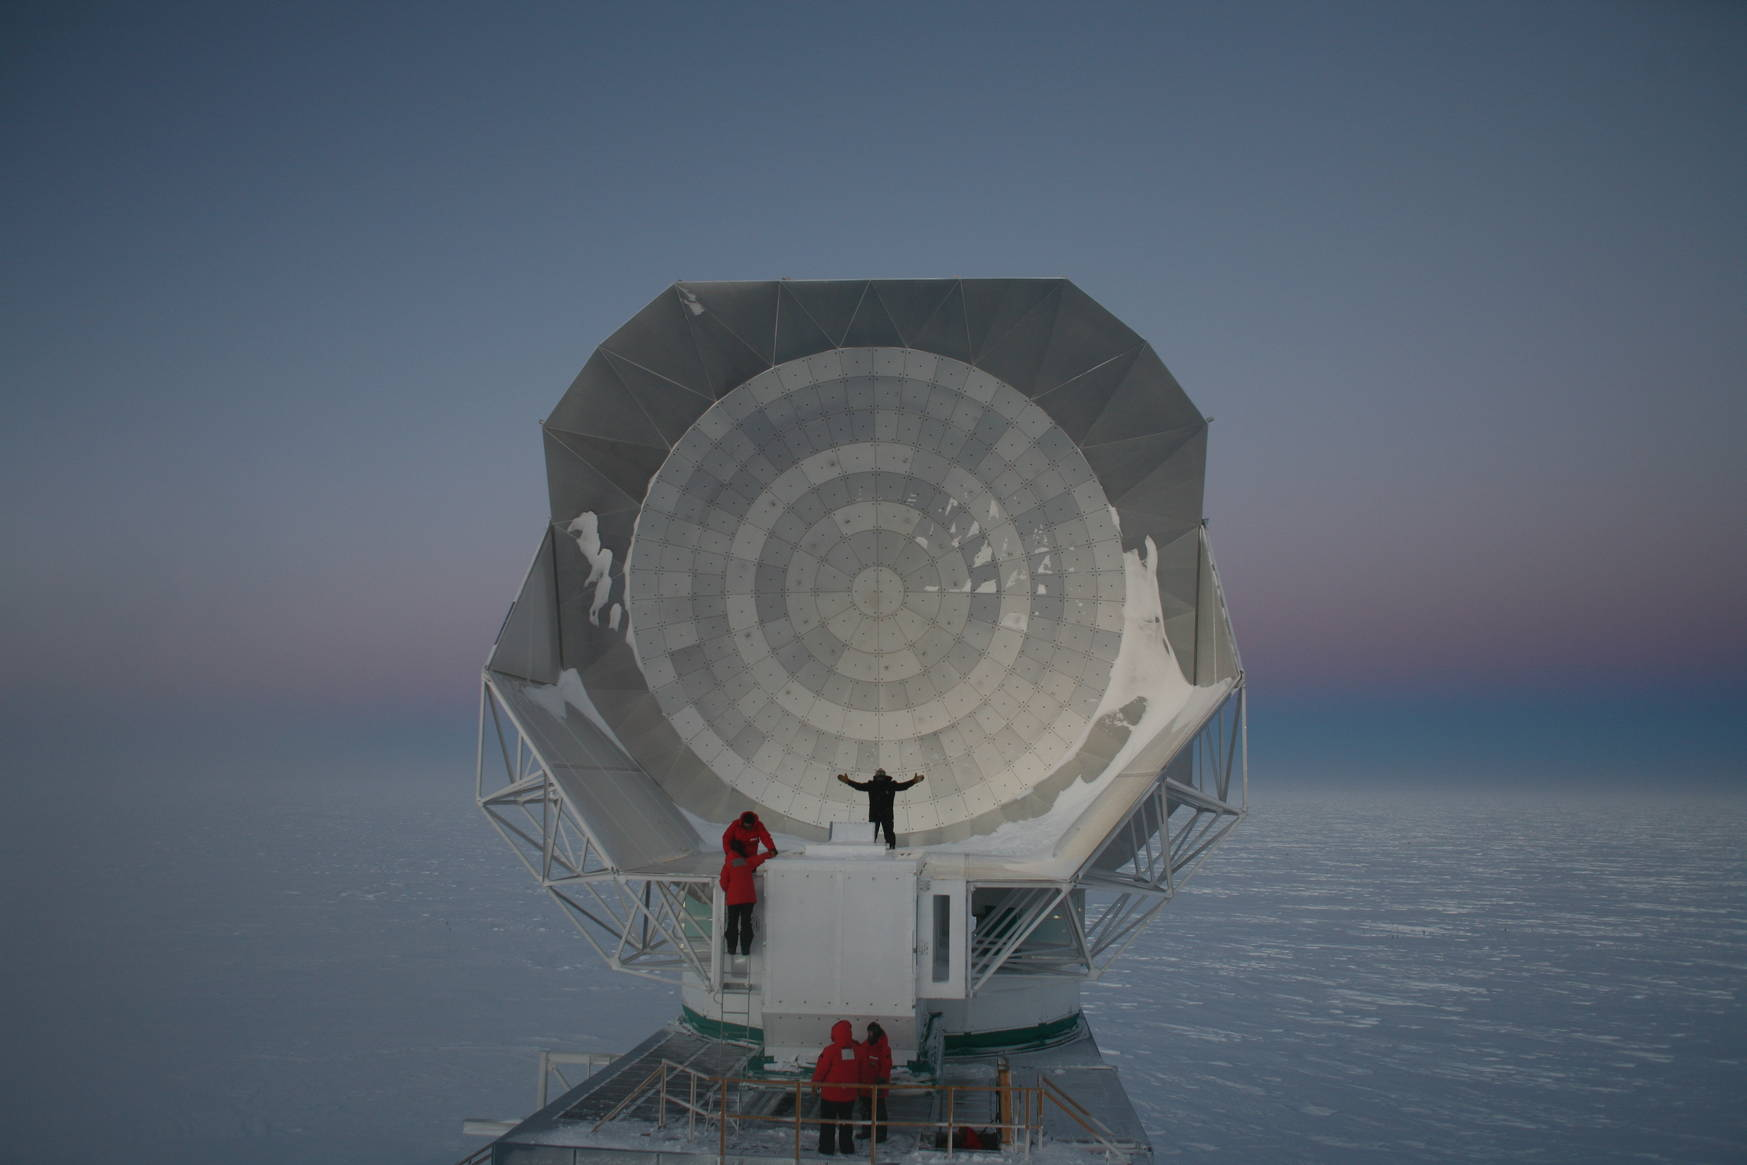 Visitors from station realizing just how large the south pole telescope really is.